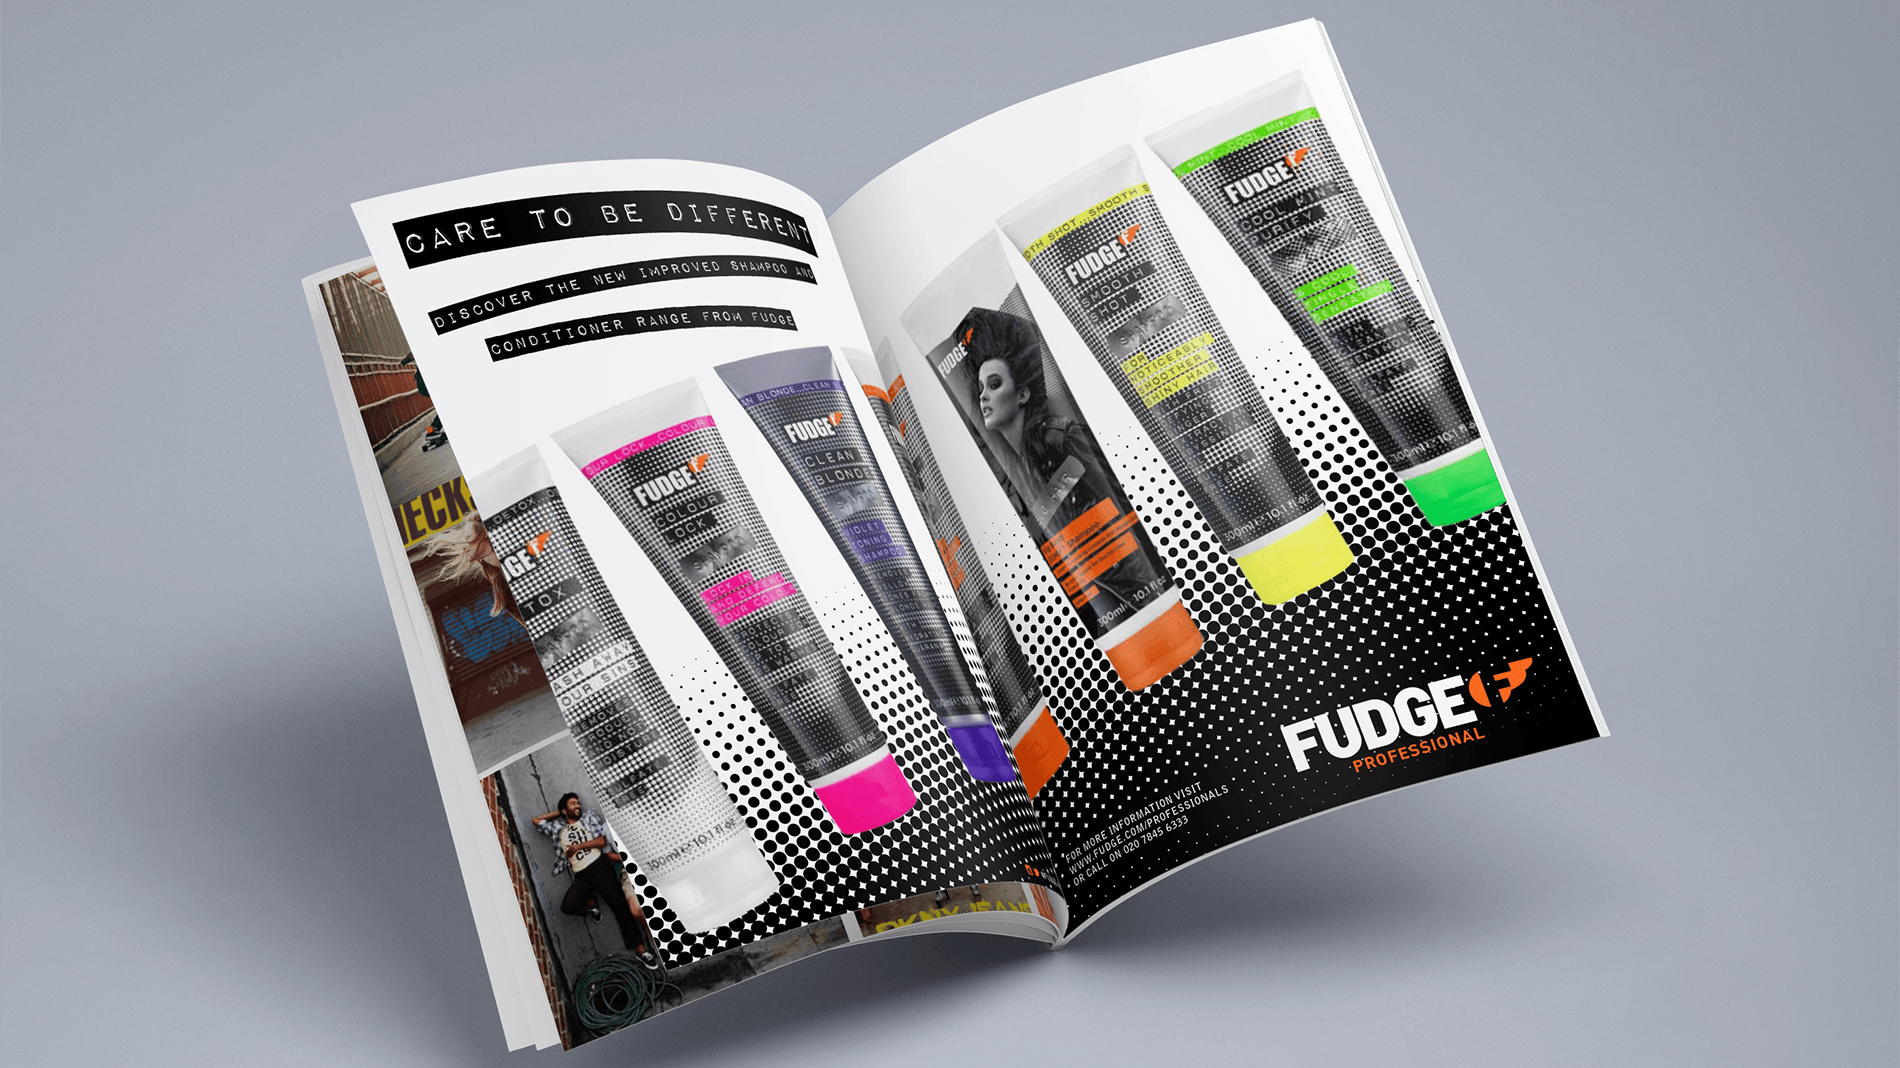 Magazine open spread with double page advert for Fudge Professional range